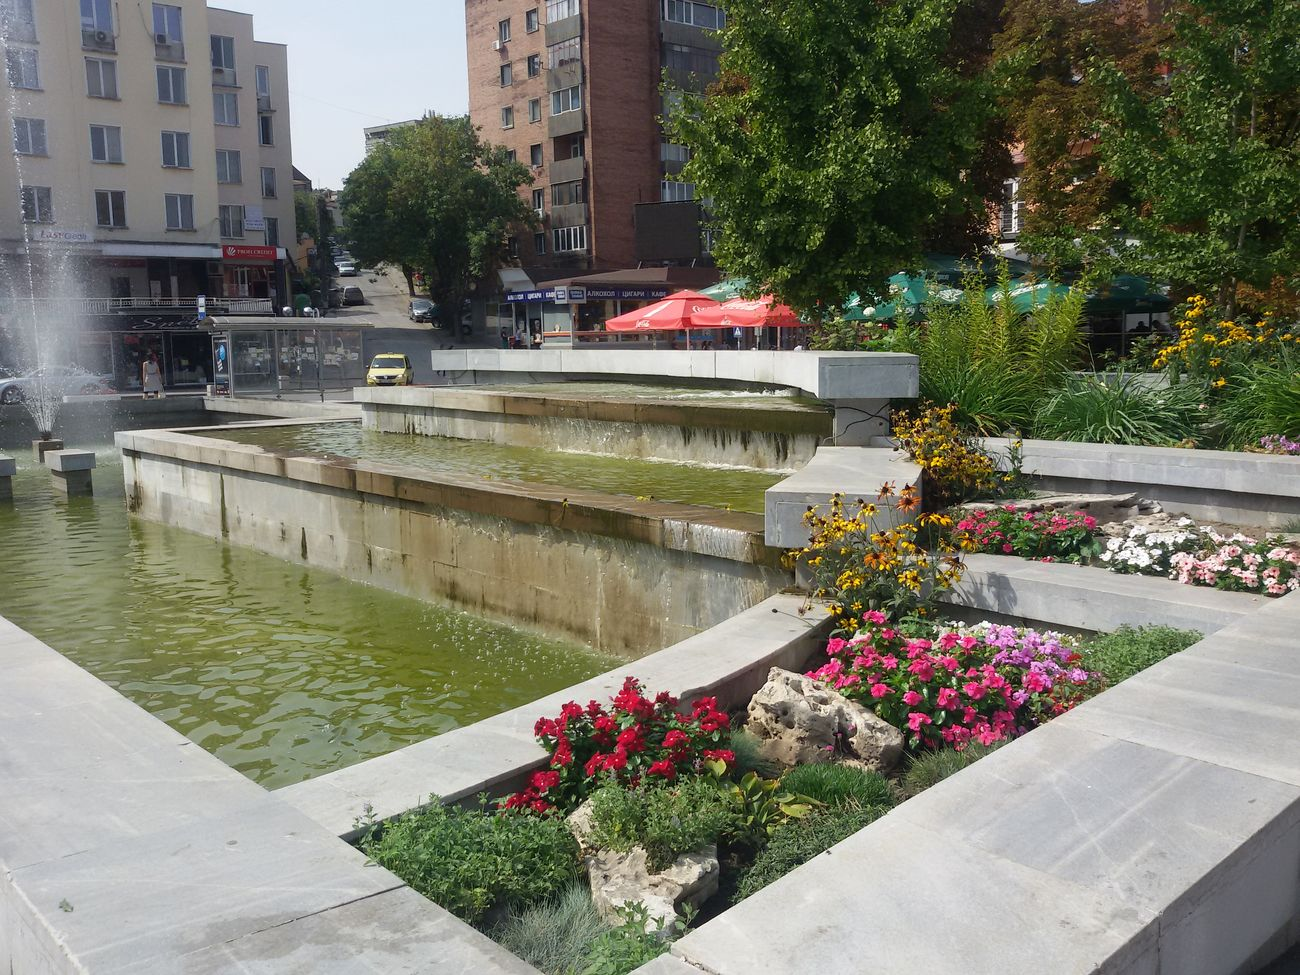 Nice Fountain in Svishtov Bulgaria Fountains Fountain_collection Fountain Fun Secret Garden Flower Flowers Flowerporn Flower Collection EyeEmFlower Eyeemflowerlover City City View  Ilovephotography Lovelyview Hanging Out Eyeemphotography Nice View Enjoying The View Mobilephotography Eyee4photography From My Point Of View Check This Out